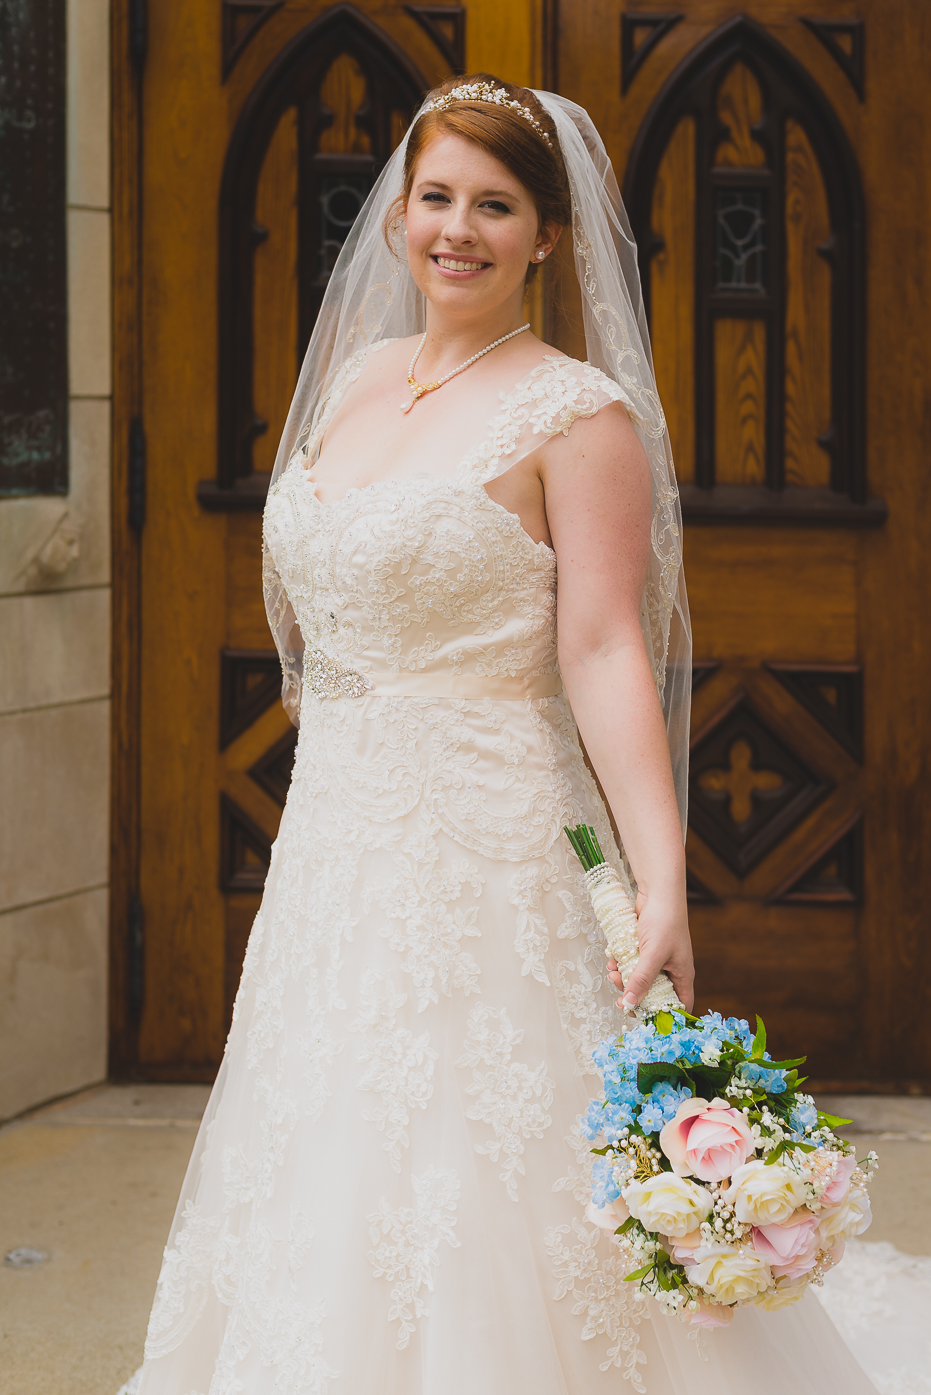 Bride with Vail